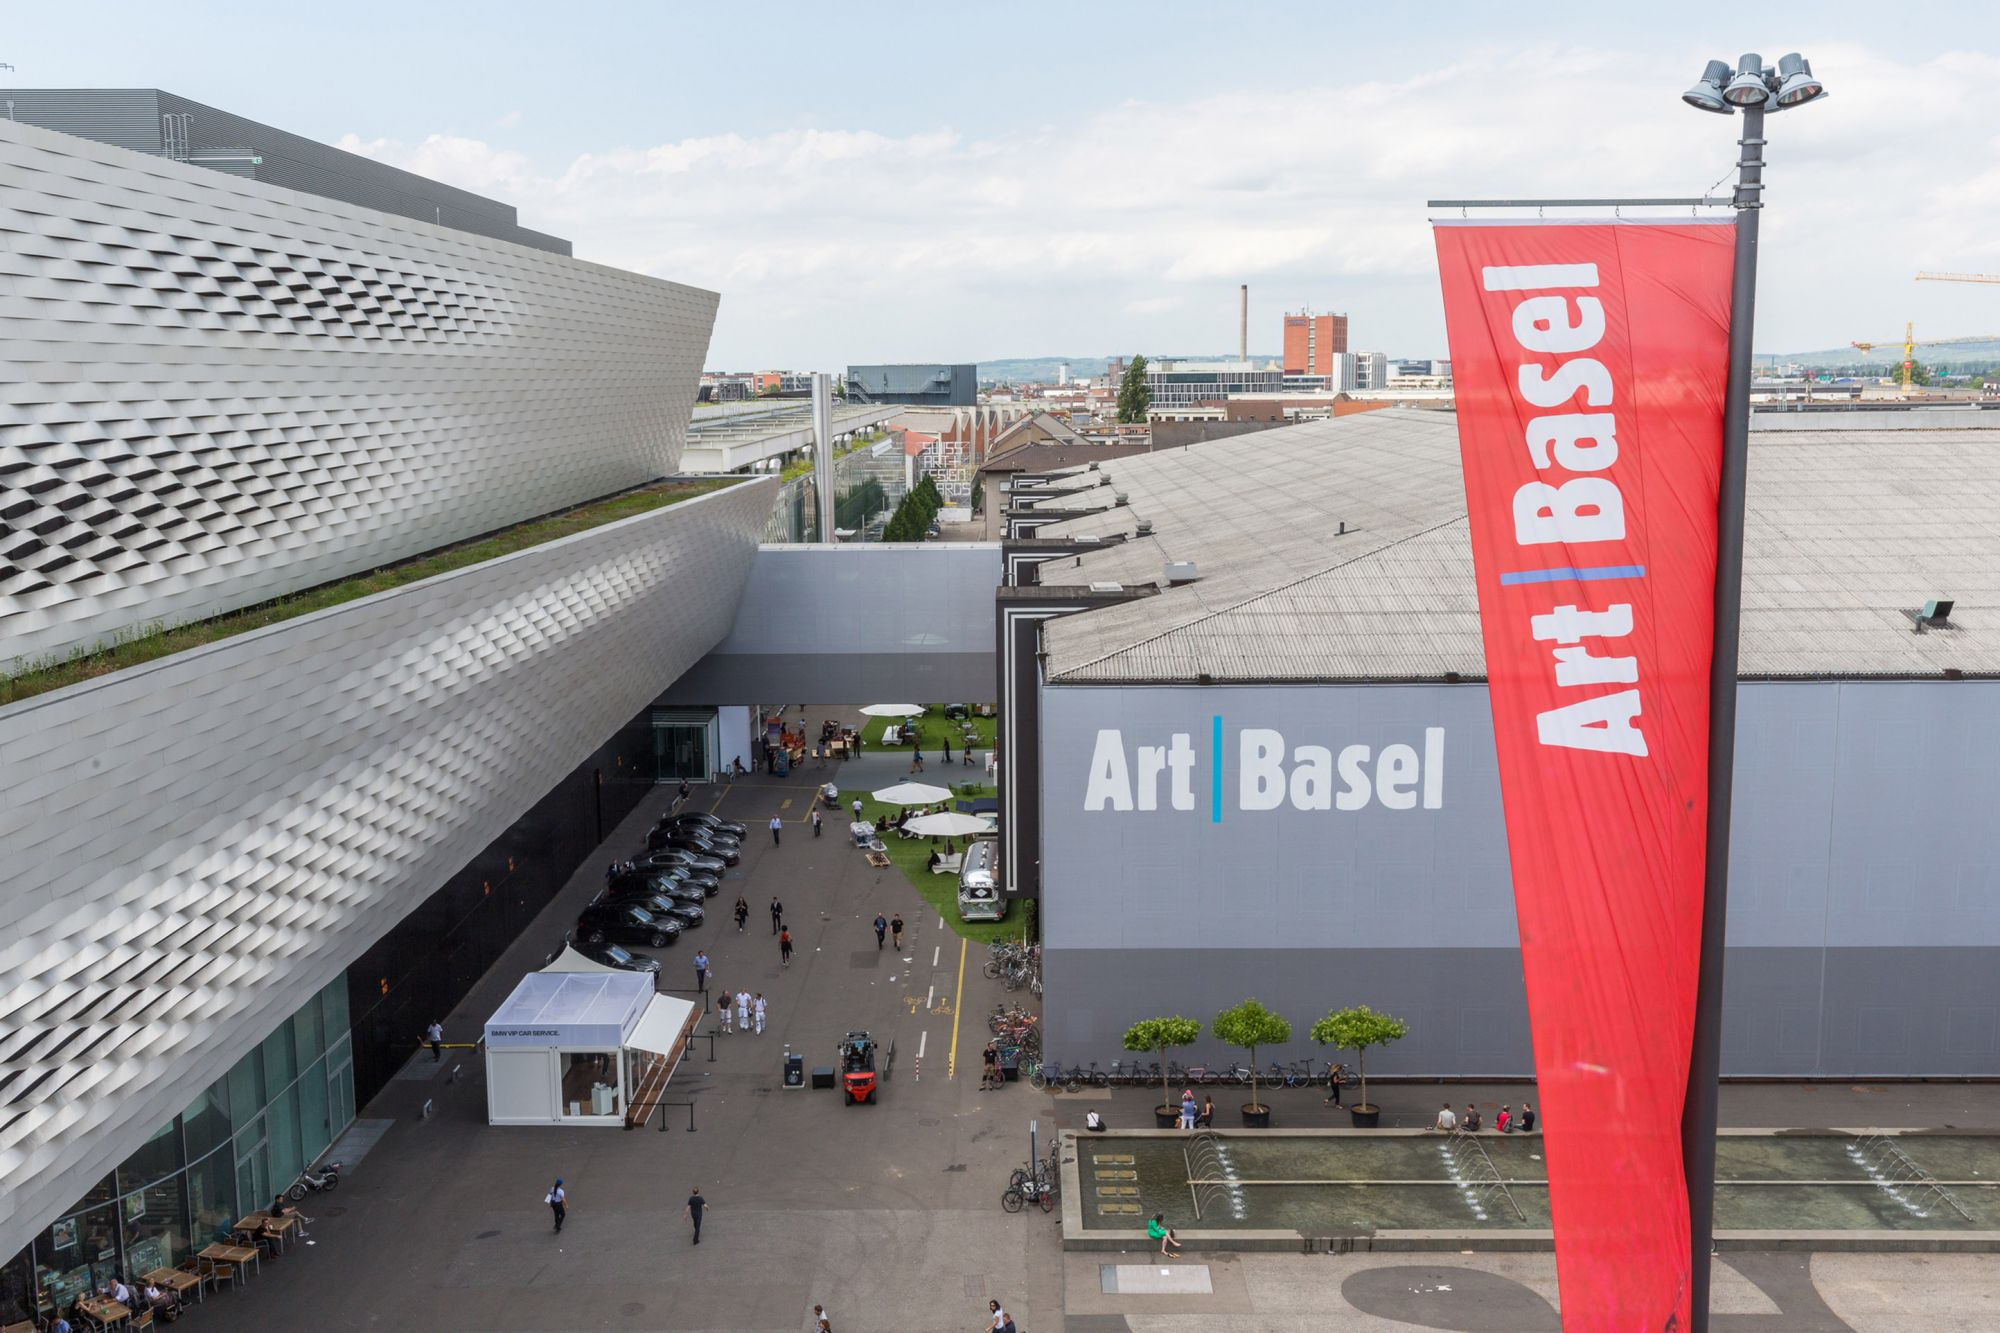 Highlights From Art Basel 2018 In Basel, Switzerland